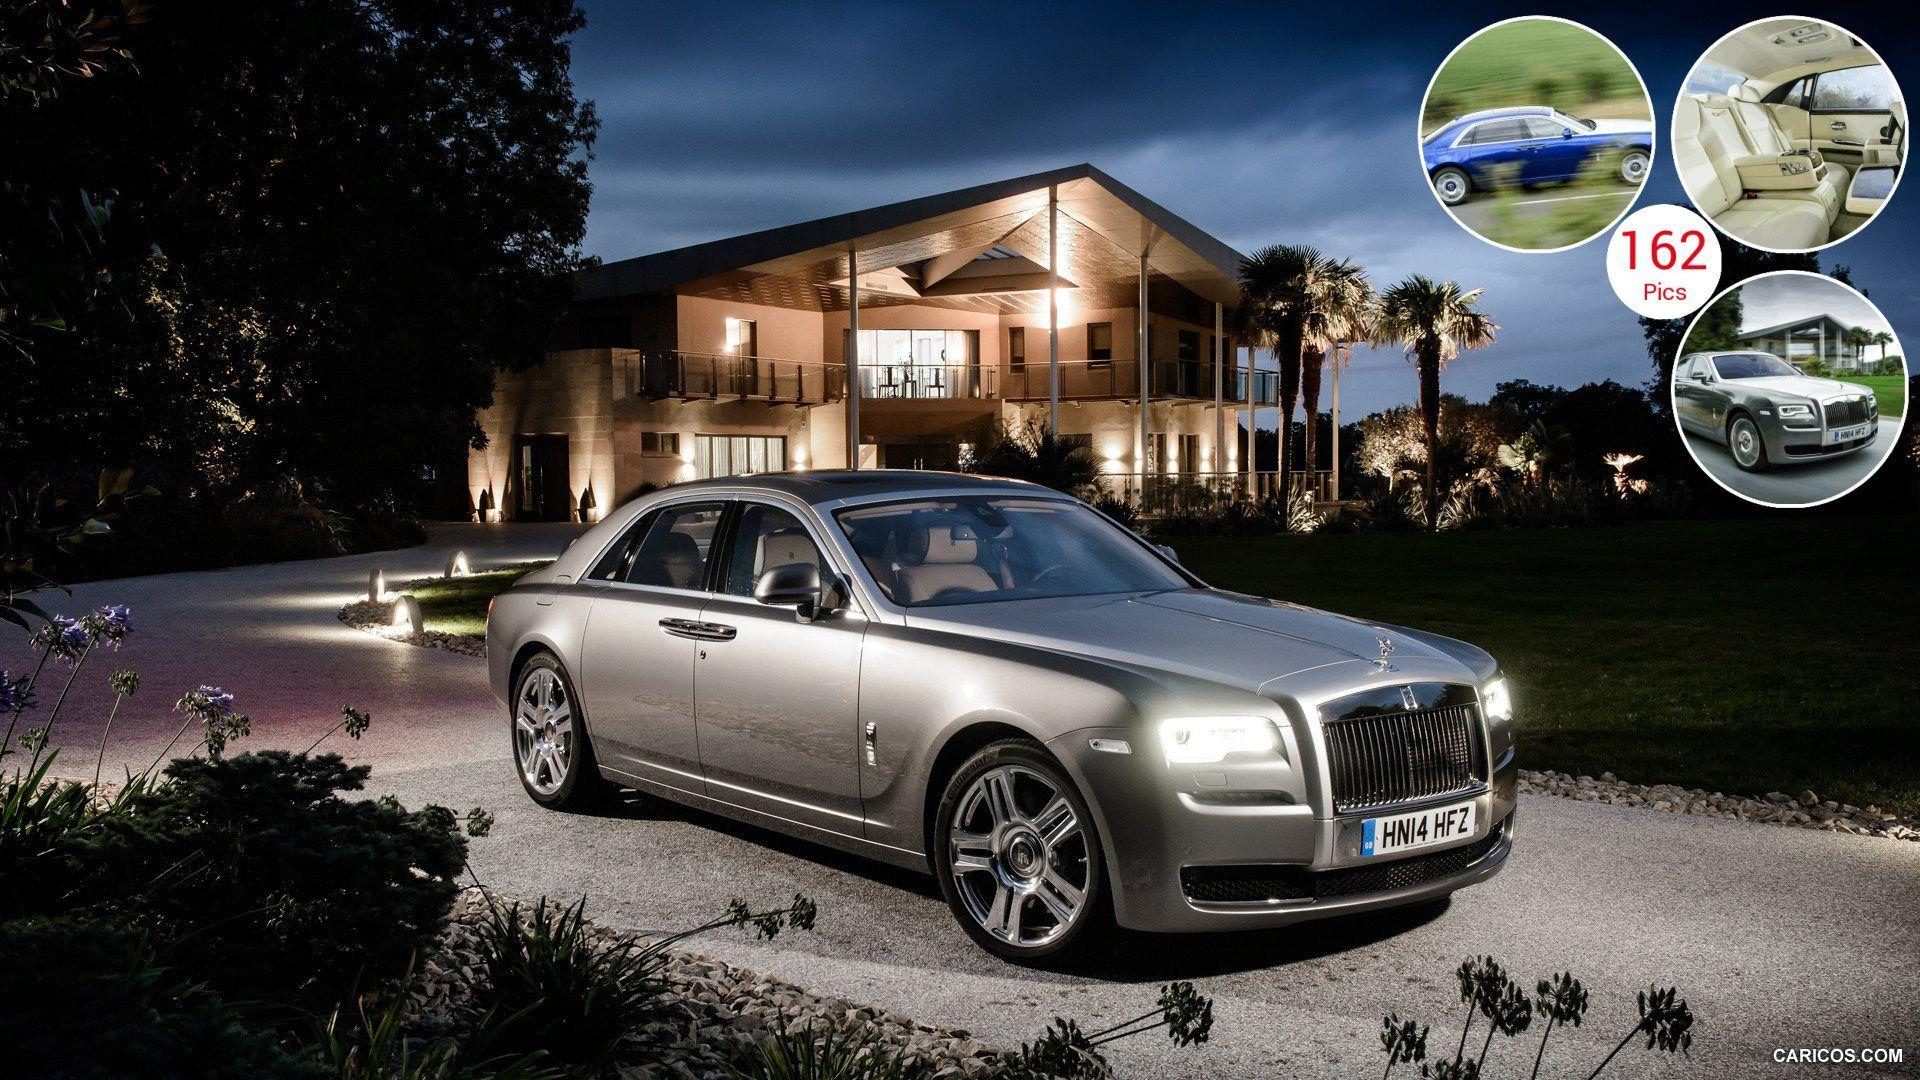 2015 Rolls-Royce Ghost Series II - Front | HD Wallpaper #5